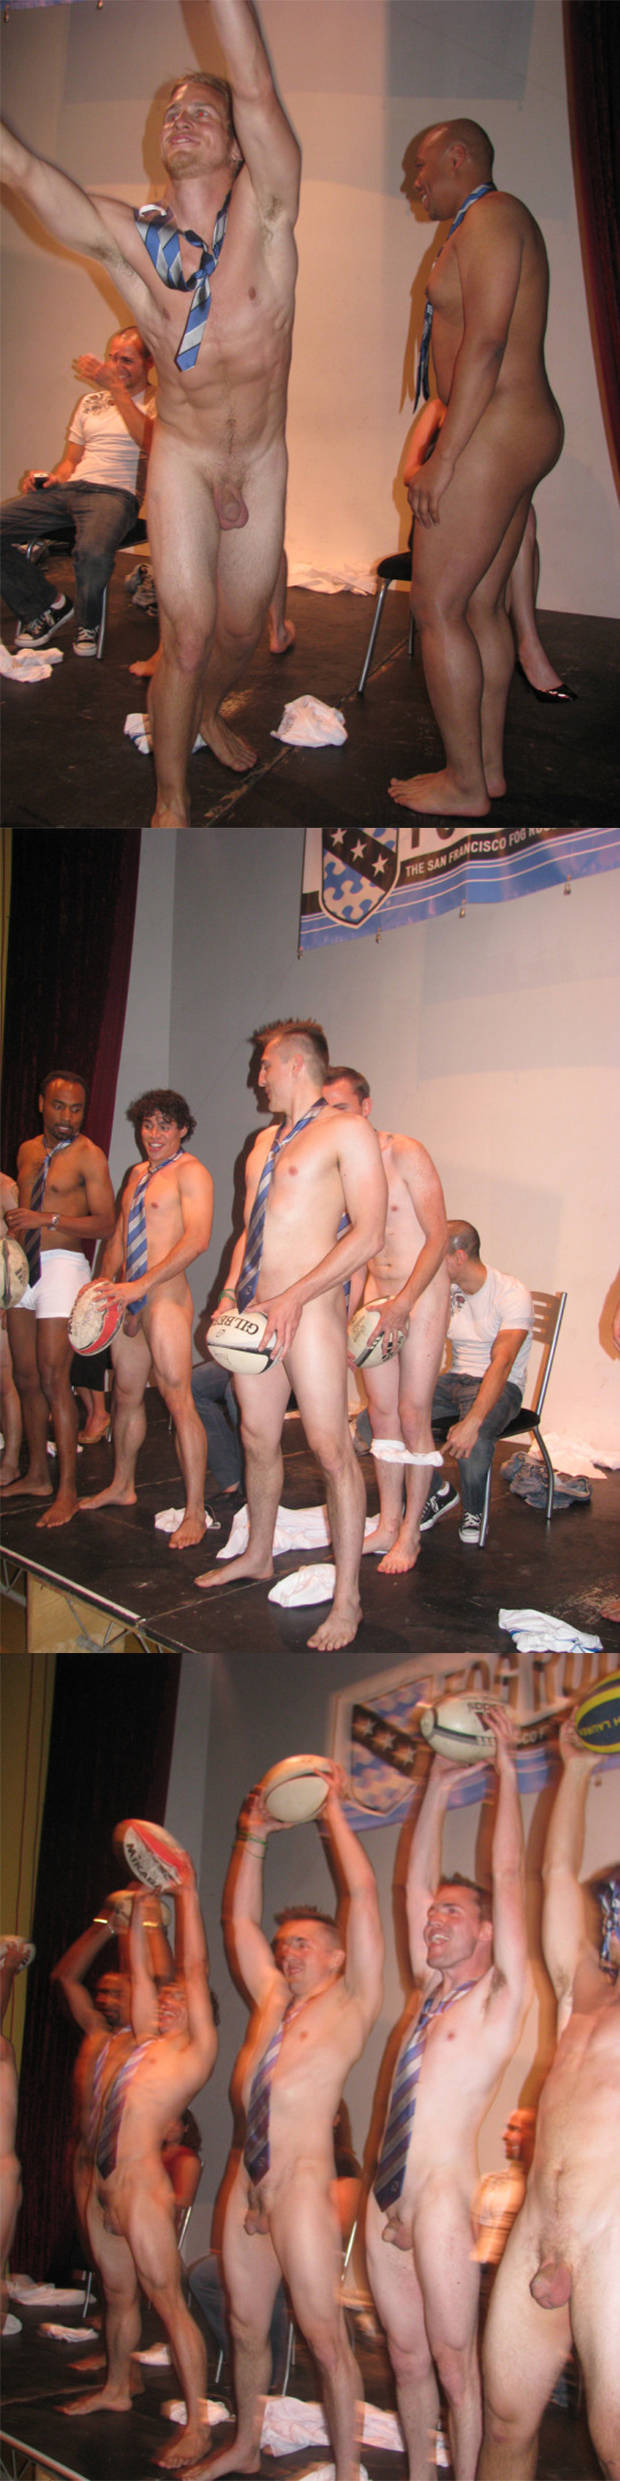 sportsmen naked rugby guys celebration